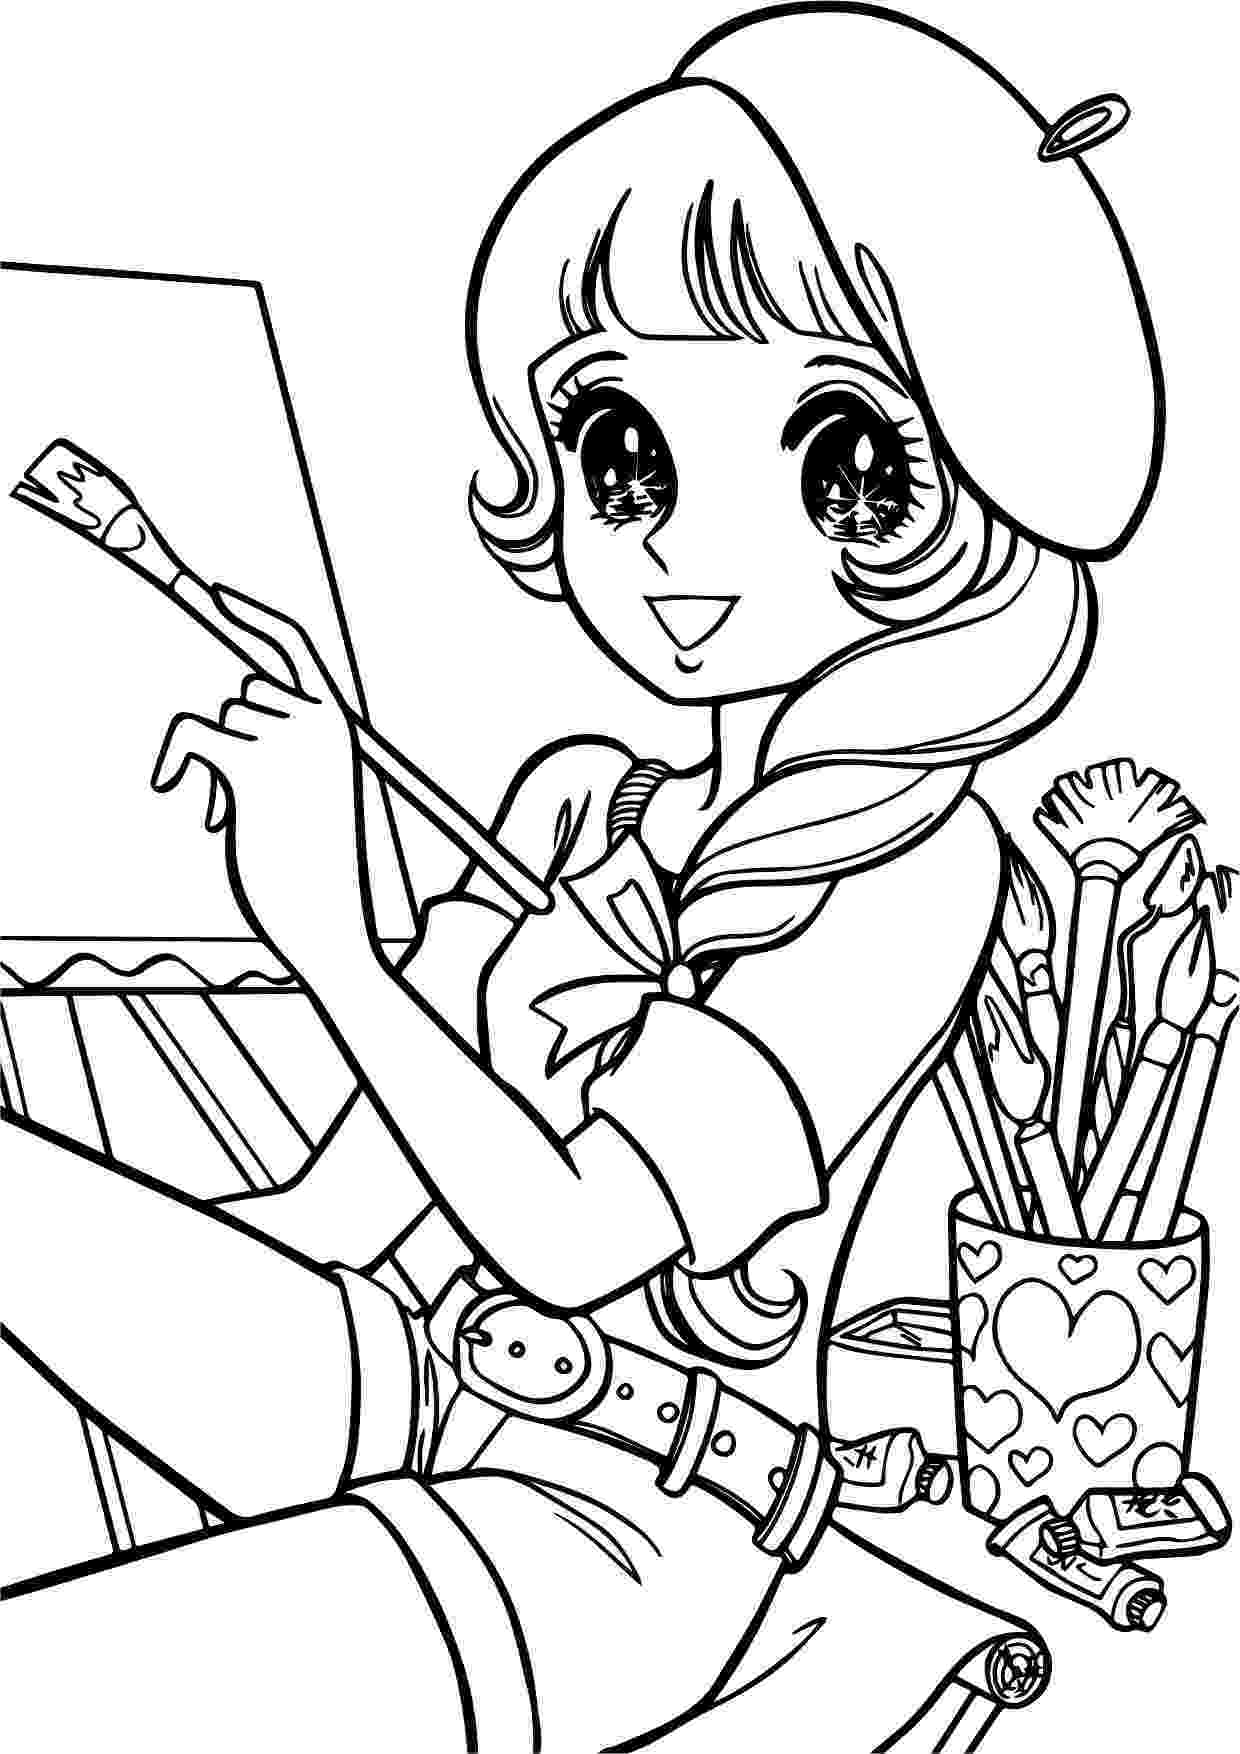 coloring picture of girl coloring pages for girls best coloring pages for kids girl coloring picture of